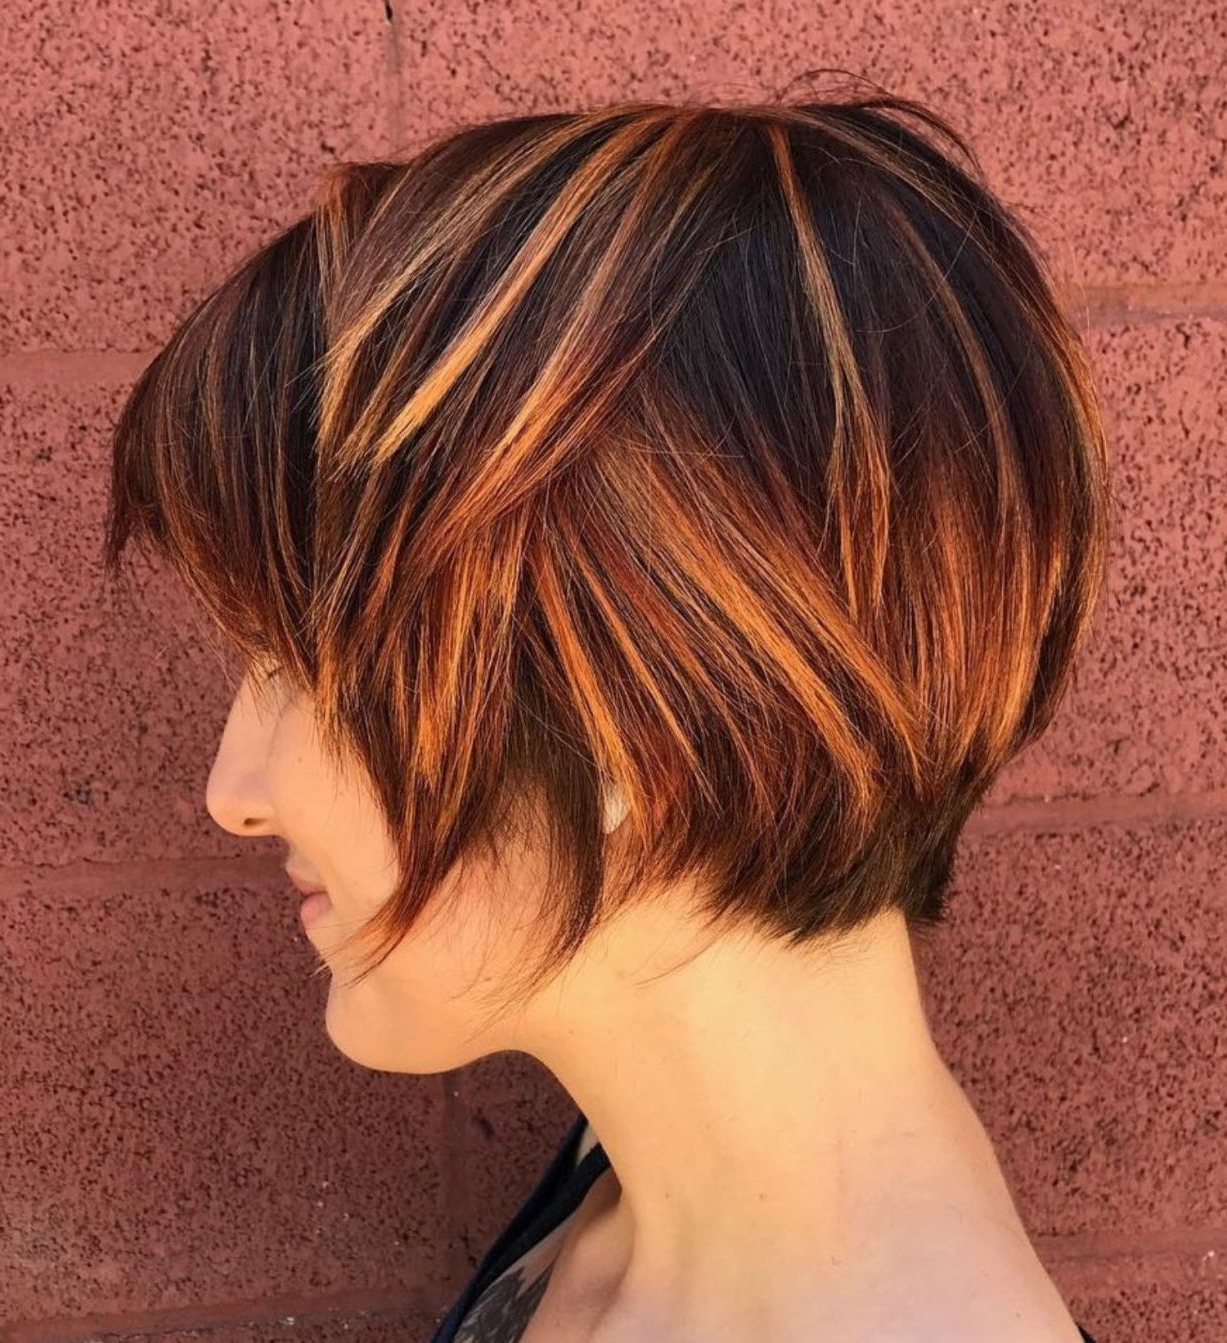 70 Cute And Easy To Style Short Layered Hairstyles In 2019 With Regard To Highlighted Short Bob Haircuts (View 9 of 20)